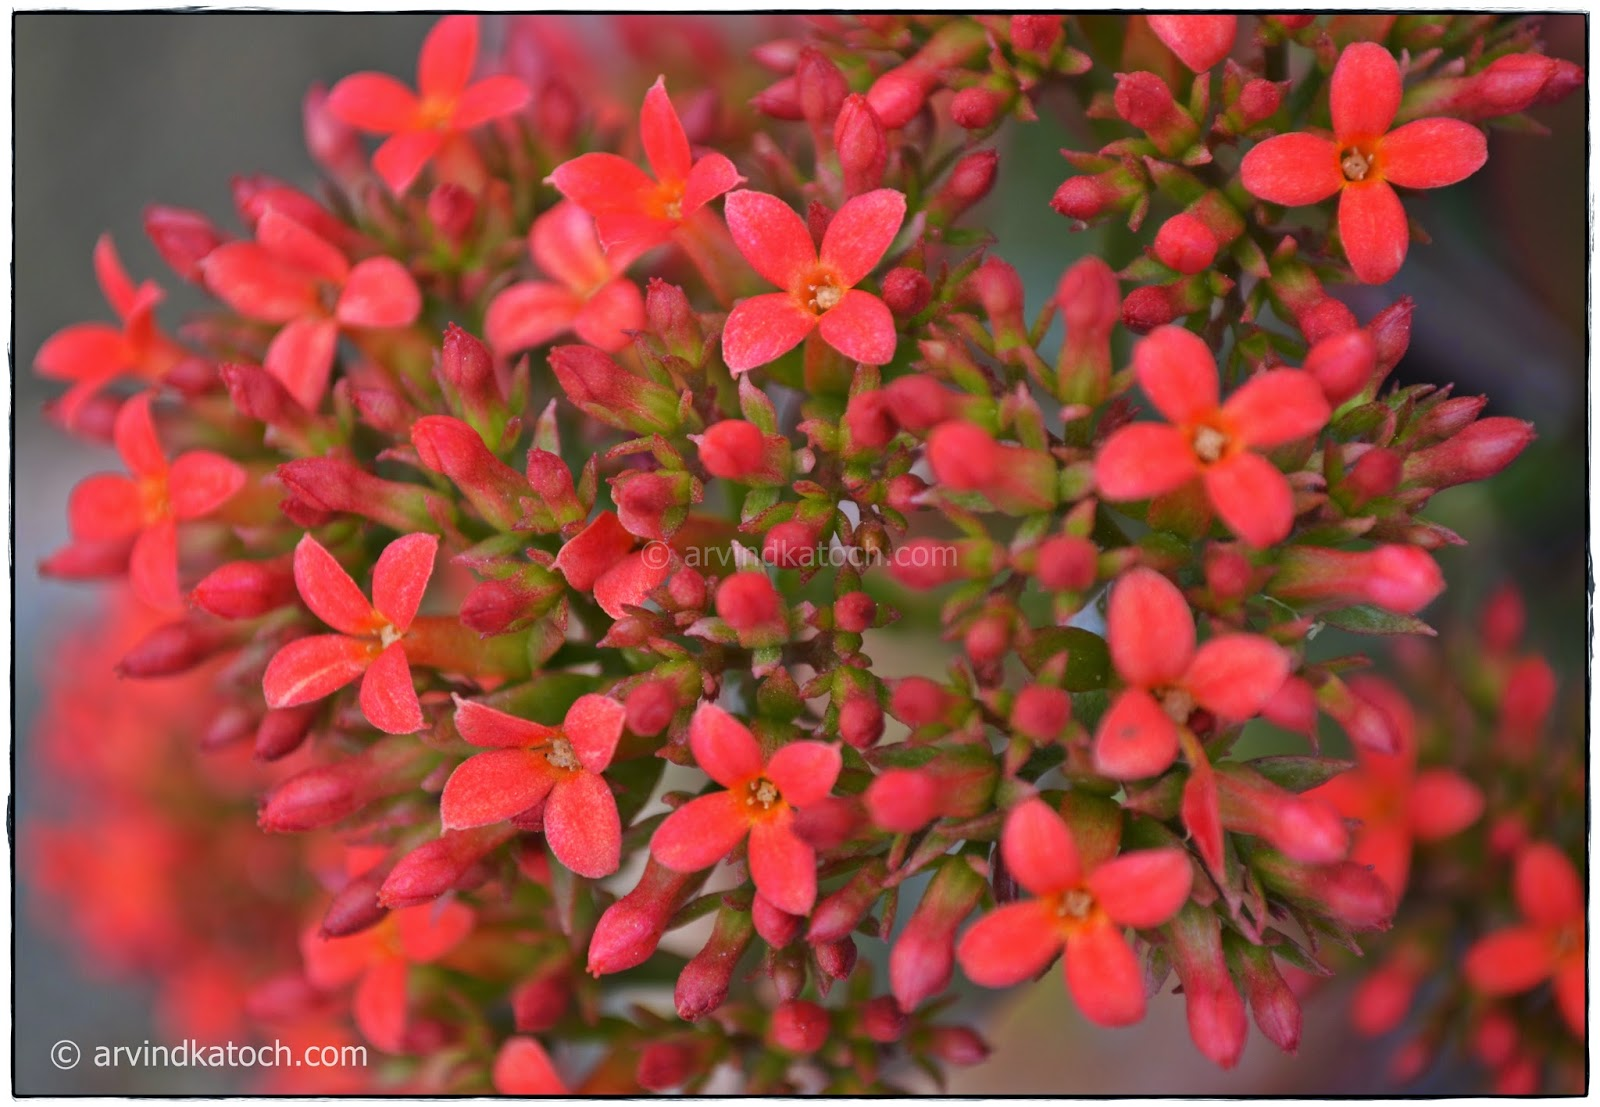 Tiny Red Flowers, Red Flowers, Red